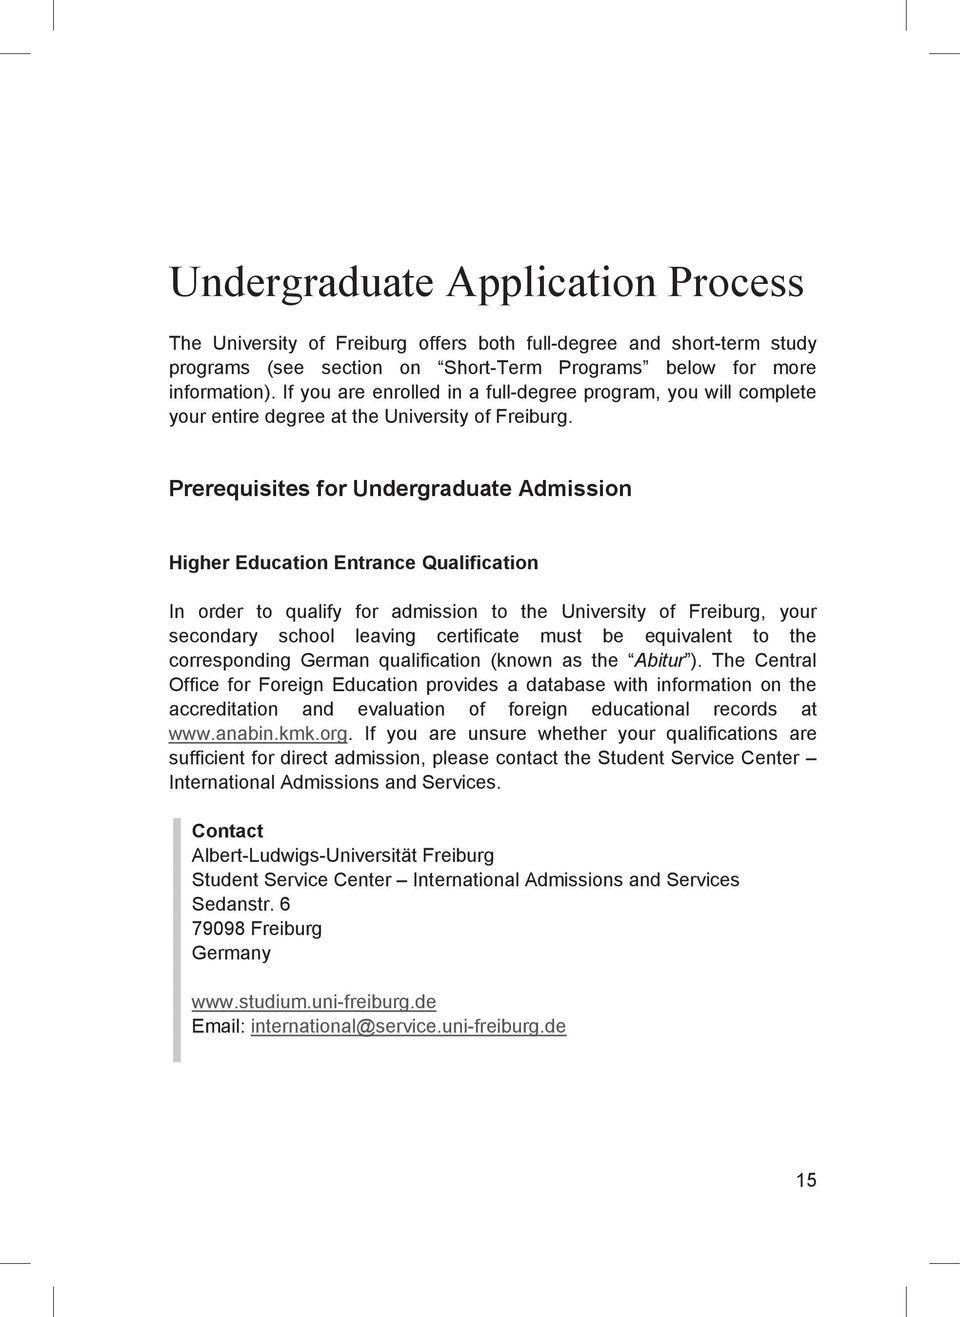 Prerequisites for Undergraduate Admission Higher Education Entrance Qualification In order to qualify for admission to the University of Freiburg, your secondary school leaving certificate must be